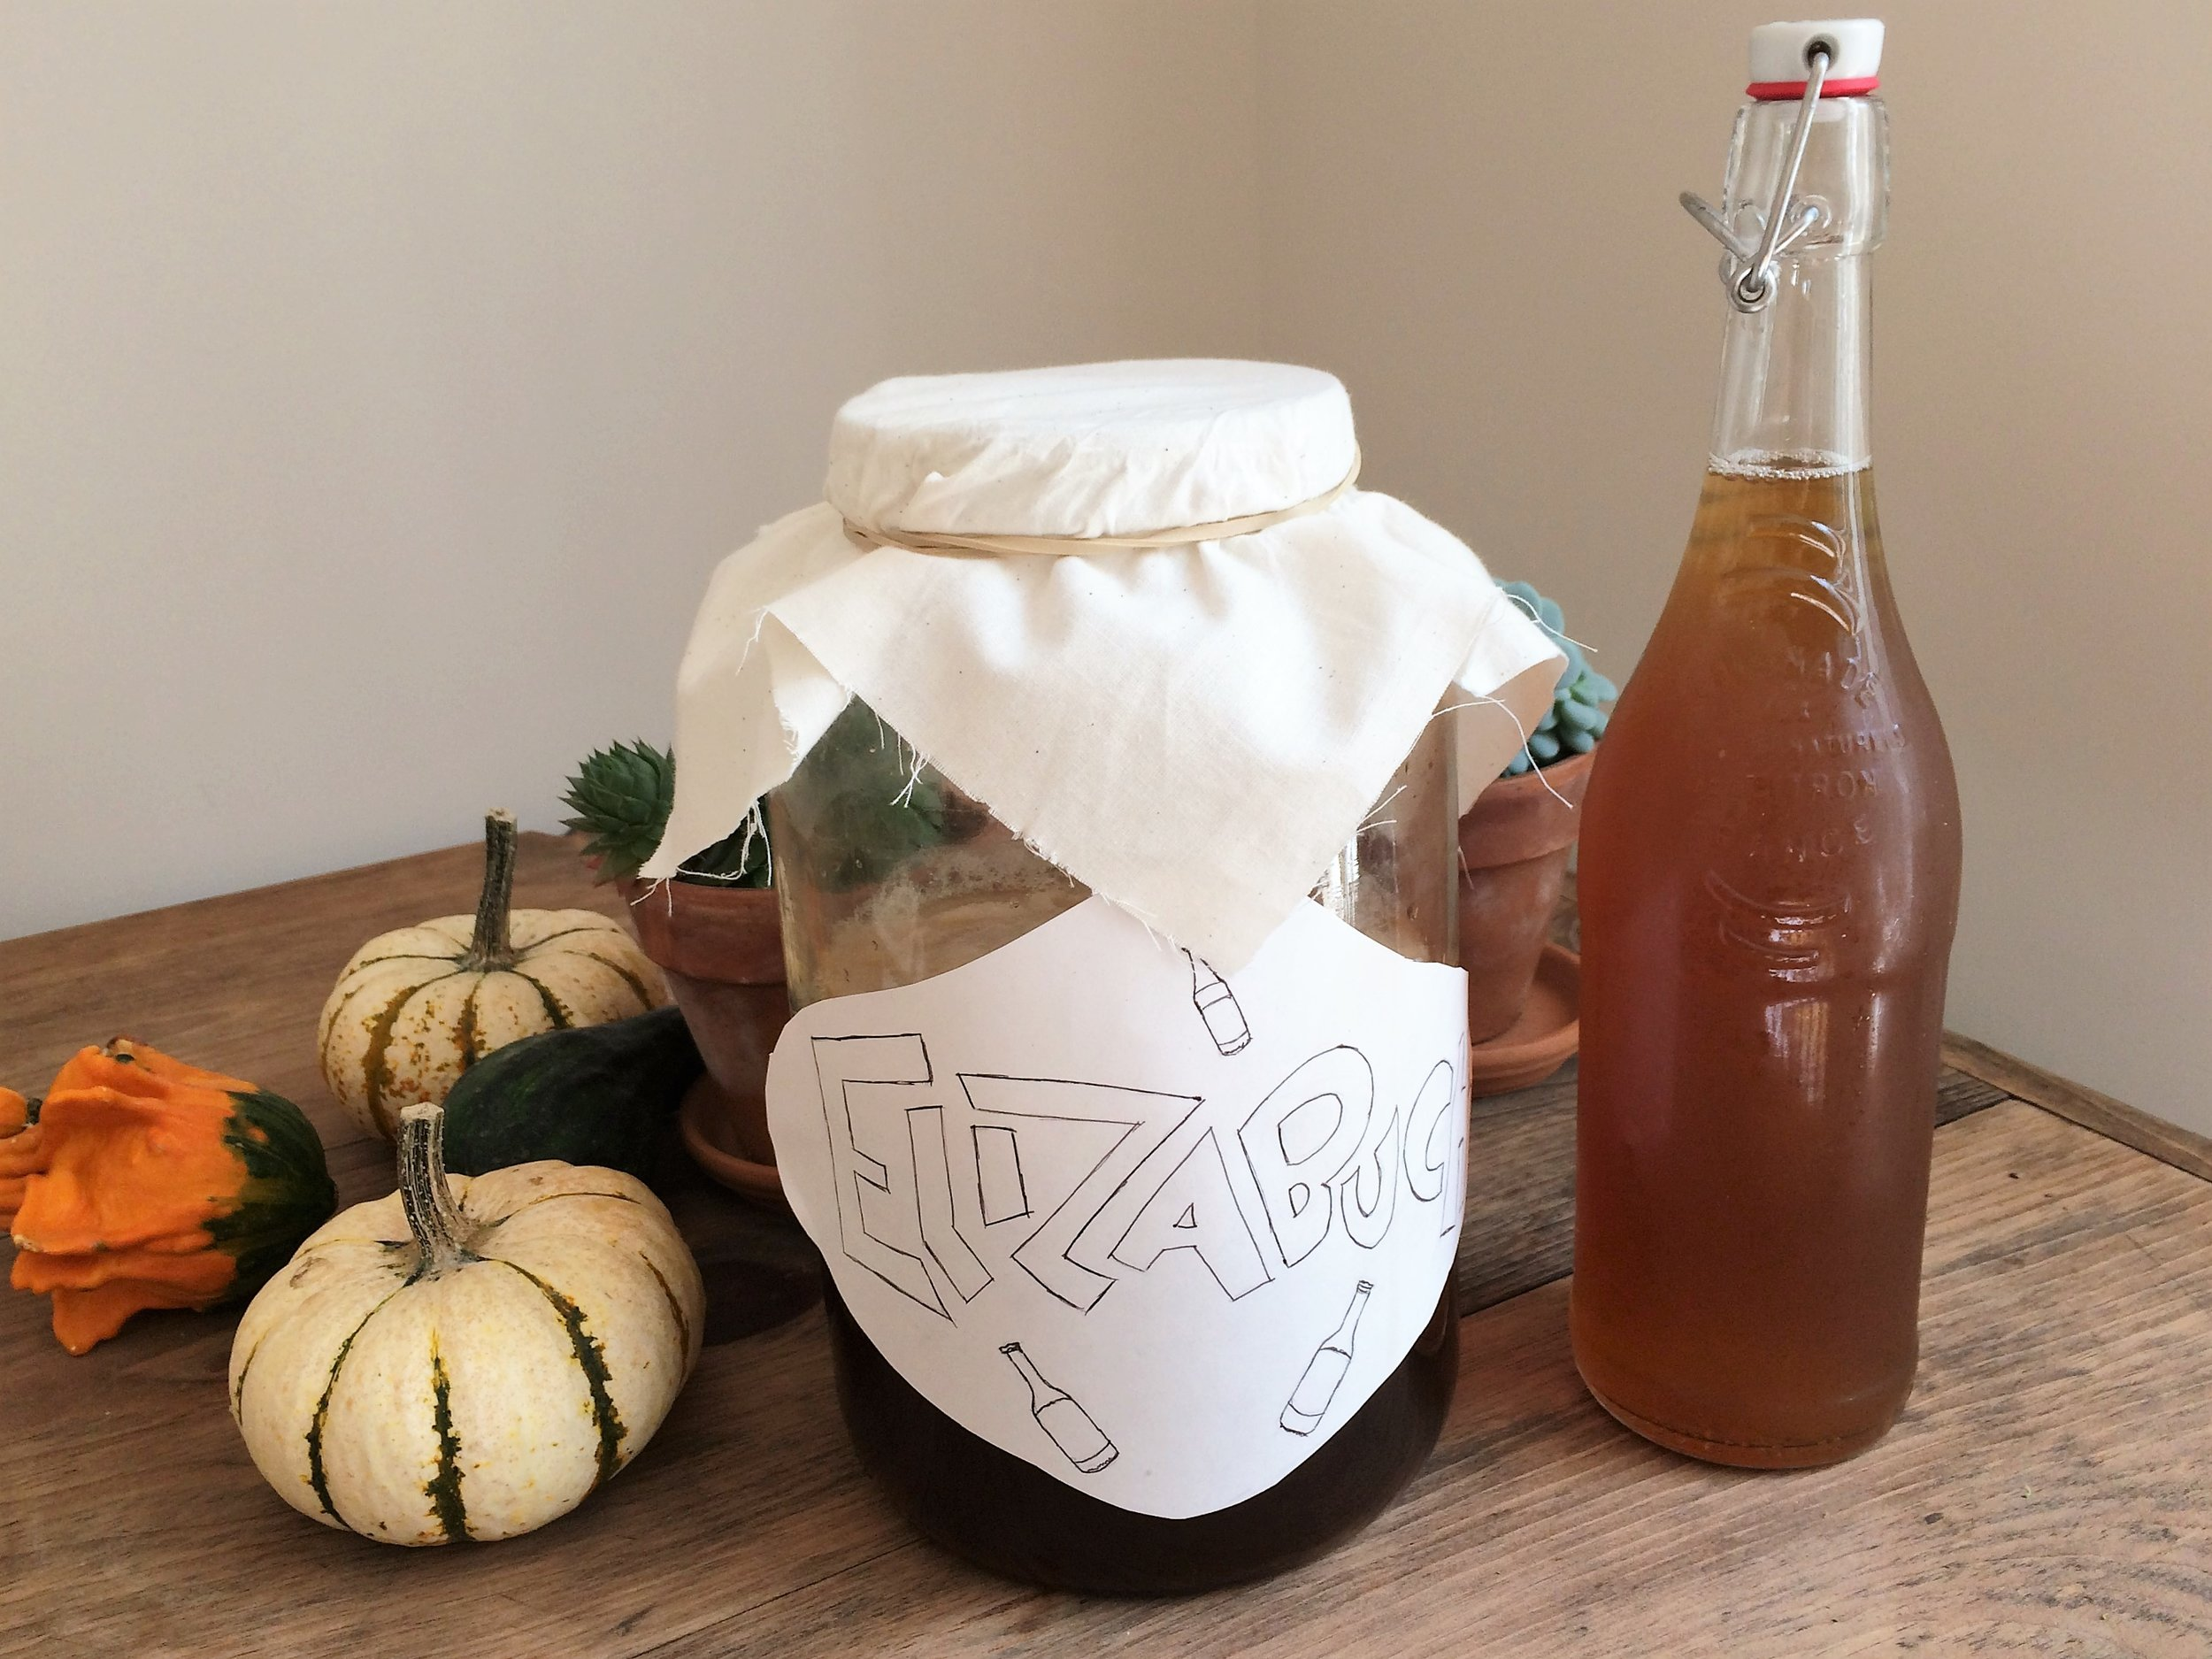 """""""elizabucha,"""" (h/t matt for the name) on the left with the fermenting black tea, dissolved sugar and scoby, and on the right, my kombucha in a jar for its second ferment with ginger."""